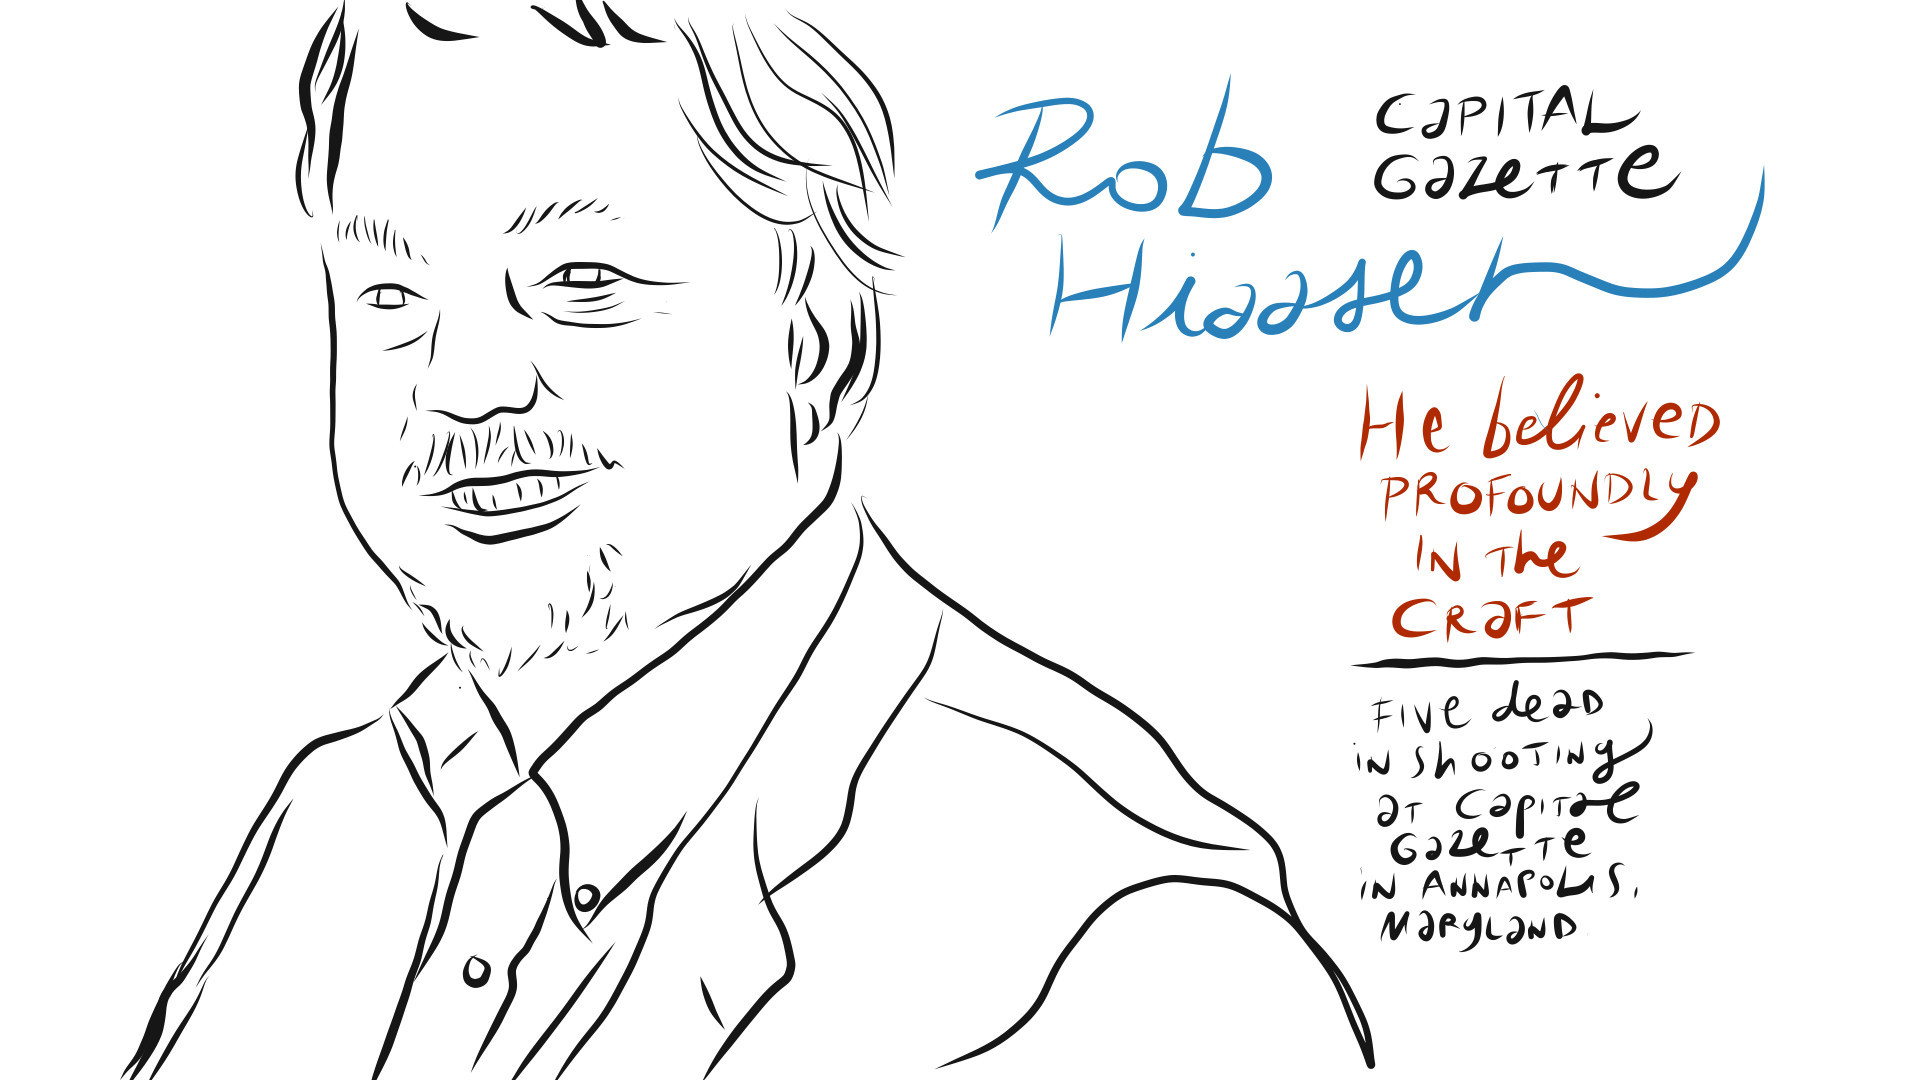 A graphic journalist's tribute to Capital Gazette shooting